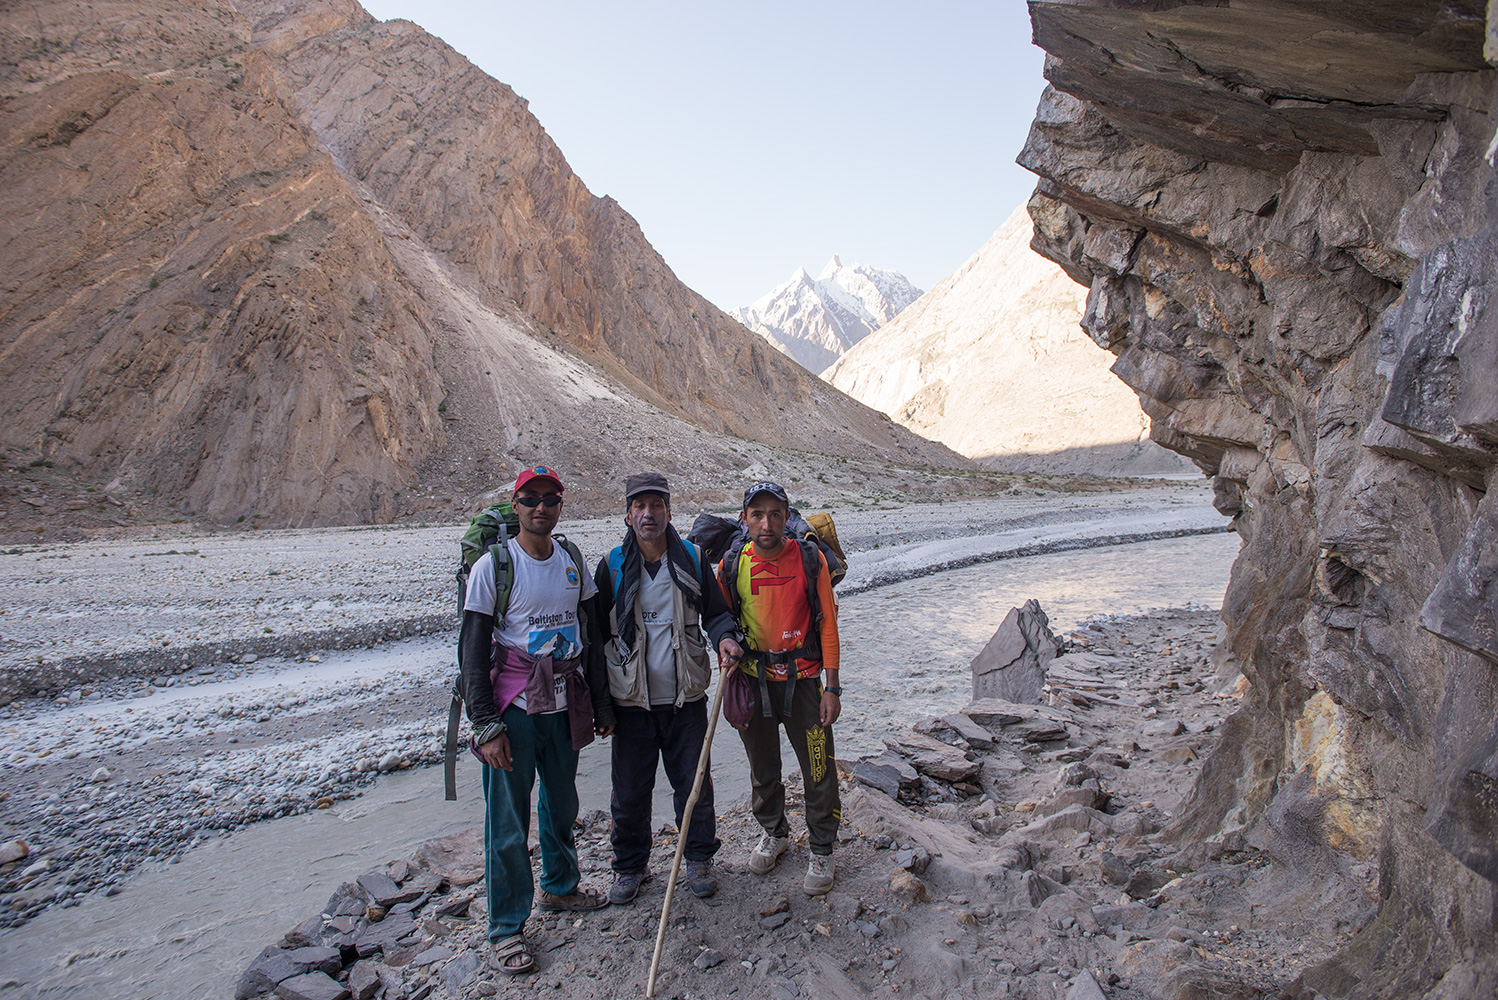 Nearing the end of our trek - the new trail around the base of the cliffs between Jhola and Khorophon. Just three hours from Askole.